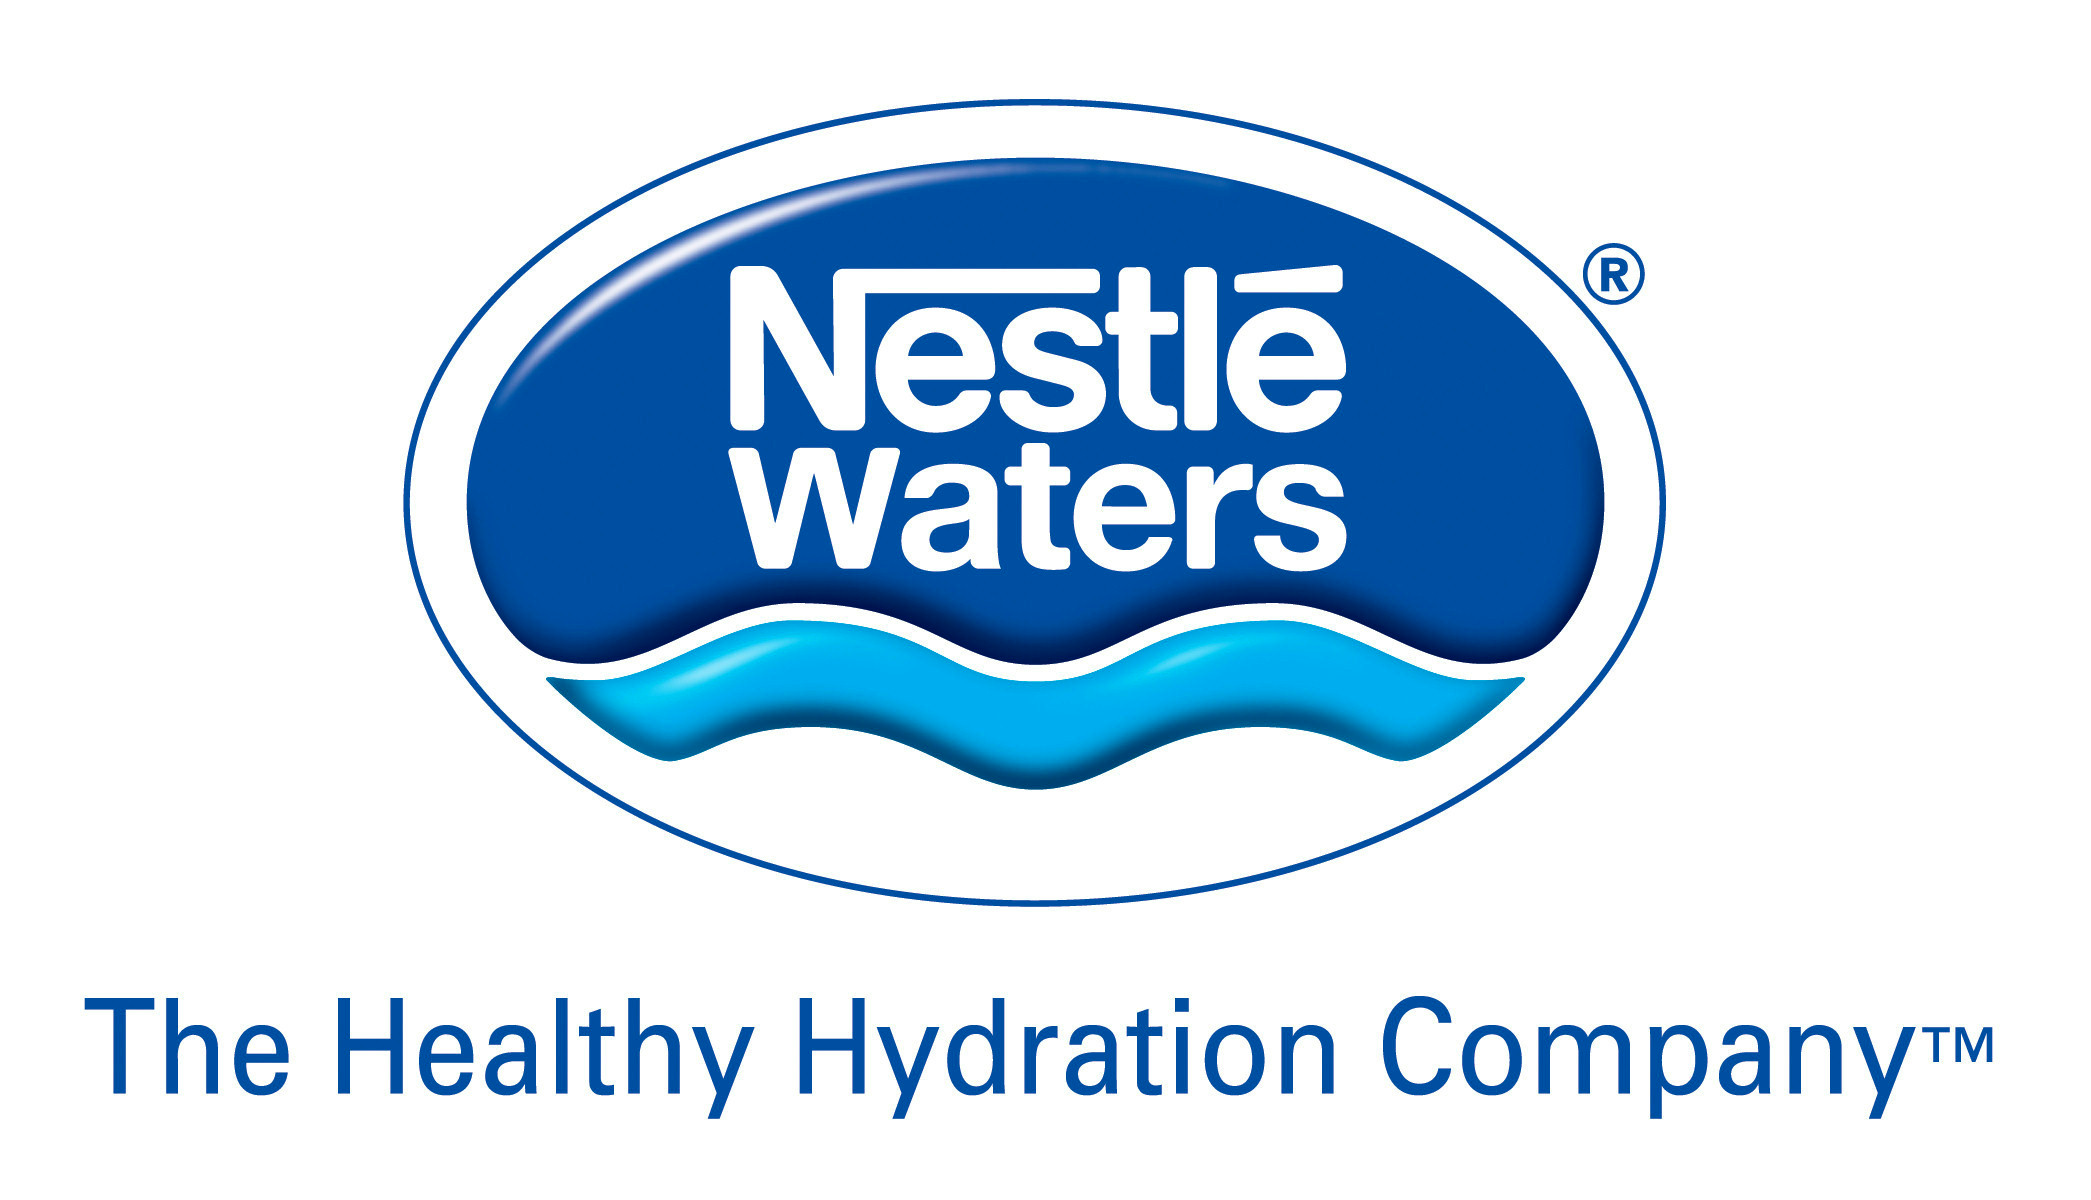 Working at Nestlé Waters